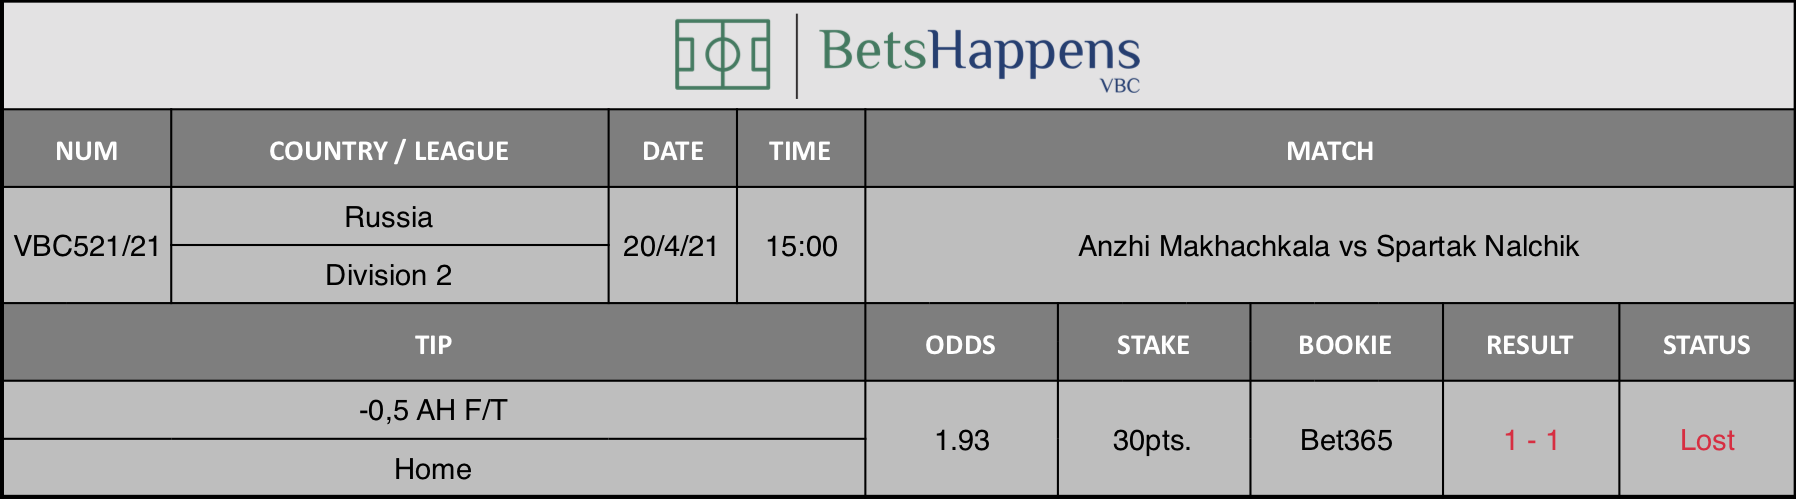 Results of our tip for the Anzhi Makhachkala vs Spartak Nalchik match where -0,5 AH F/T Home is recommended.